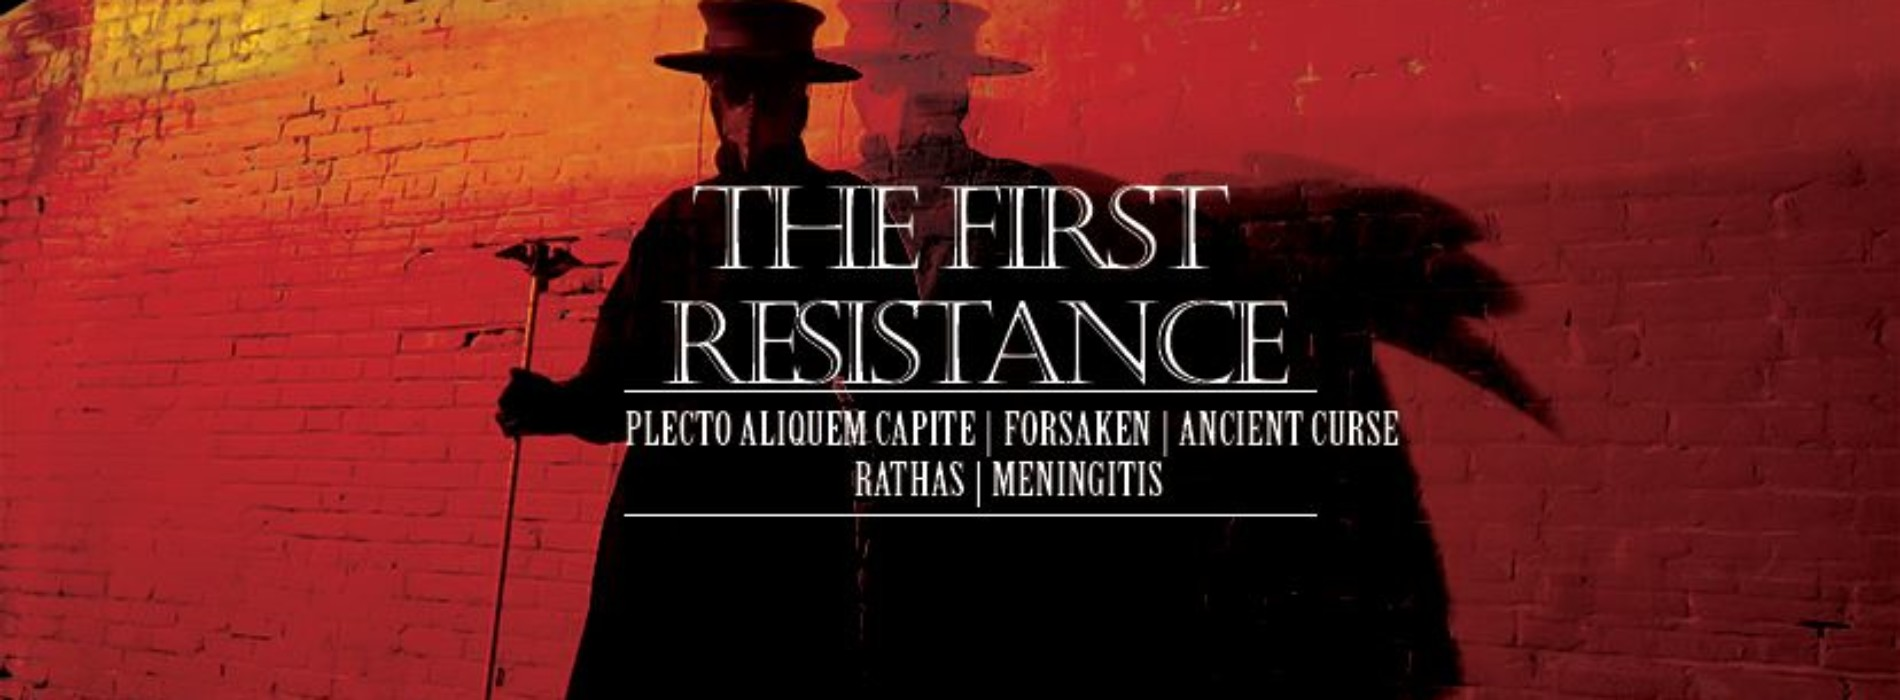 The First Resistance